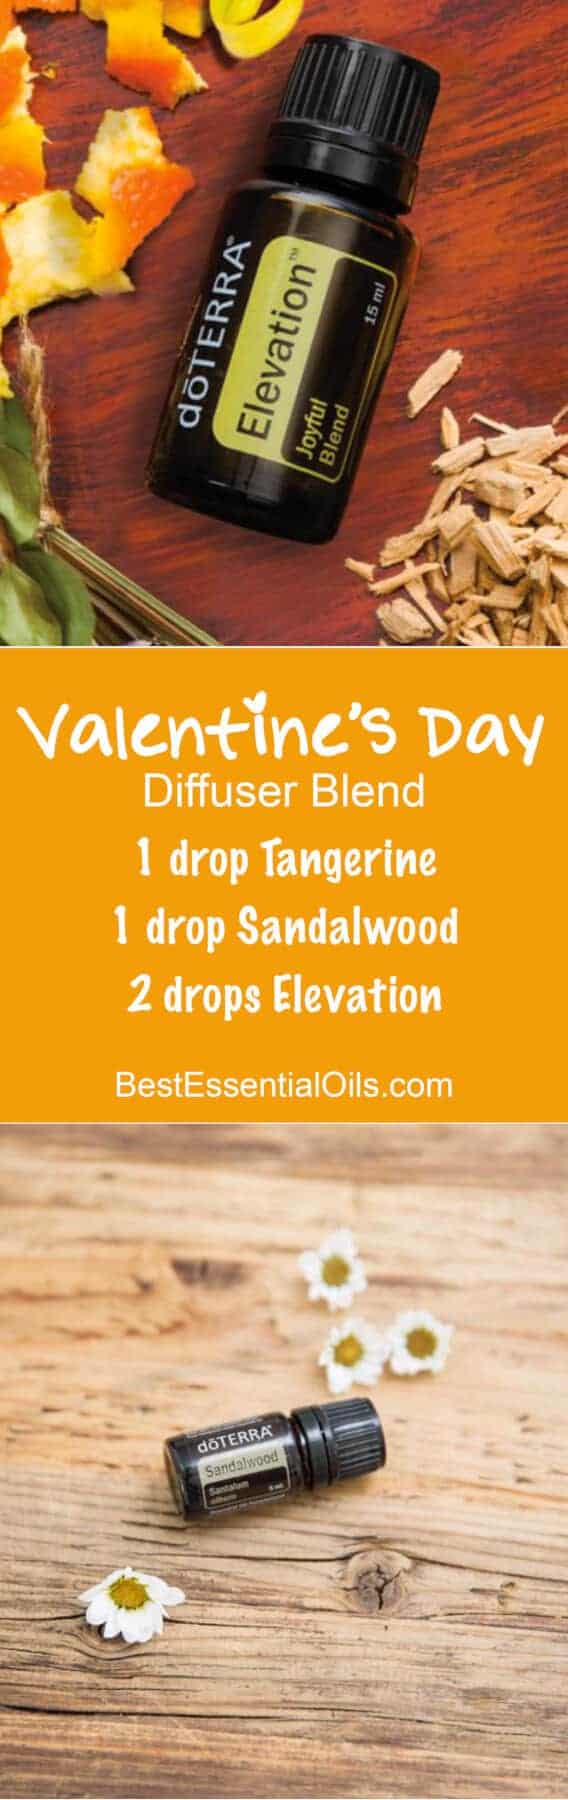 doTERRA Essential Oils Valentine's Day Diffuser Blend